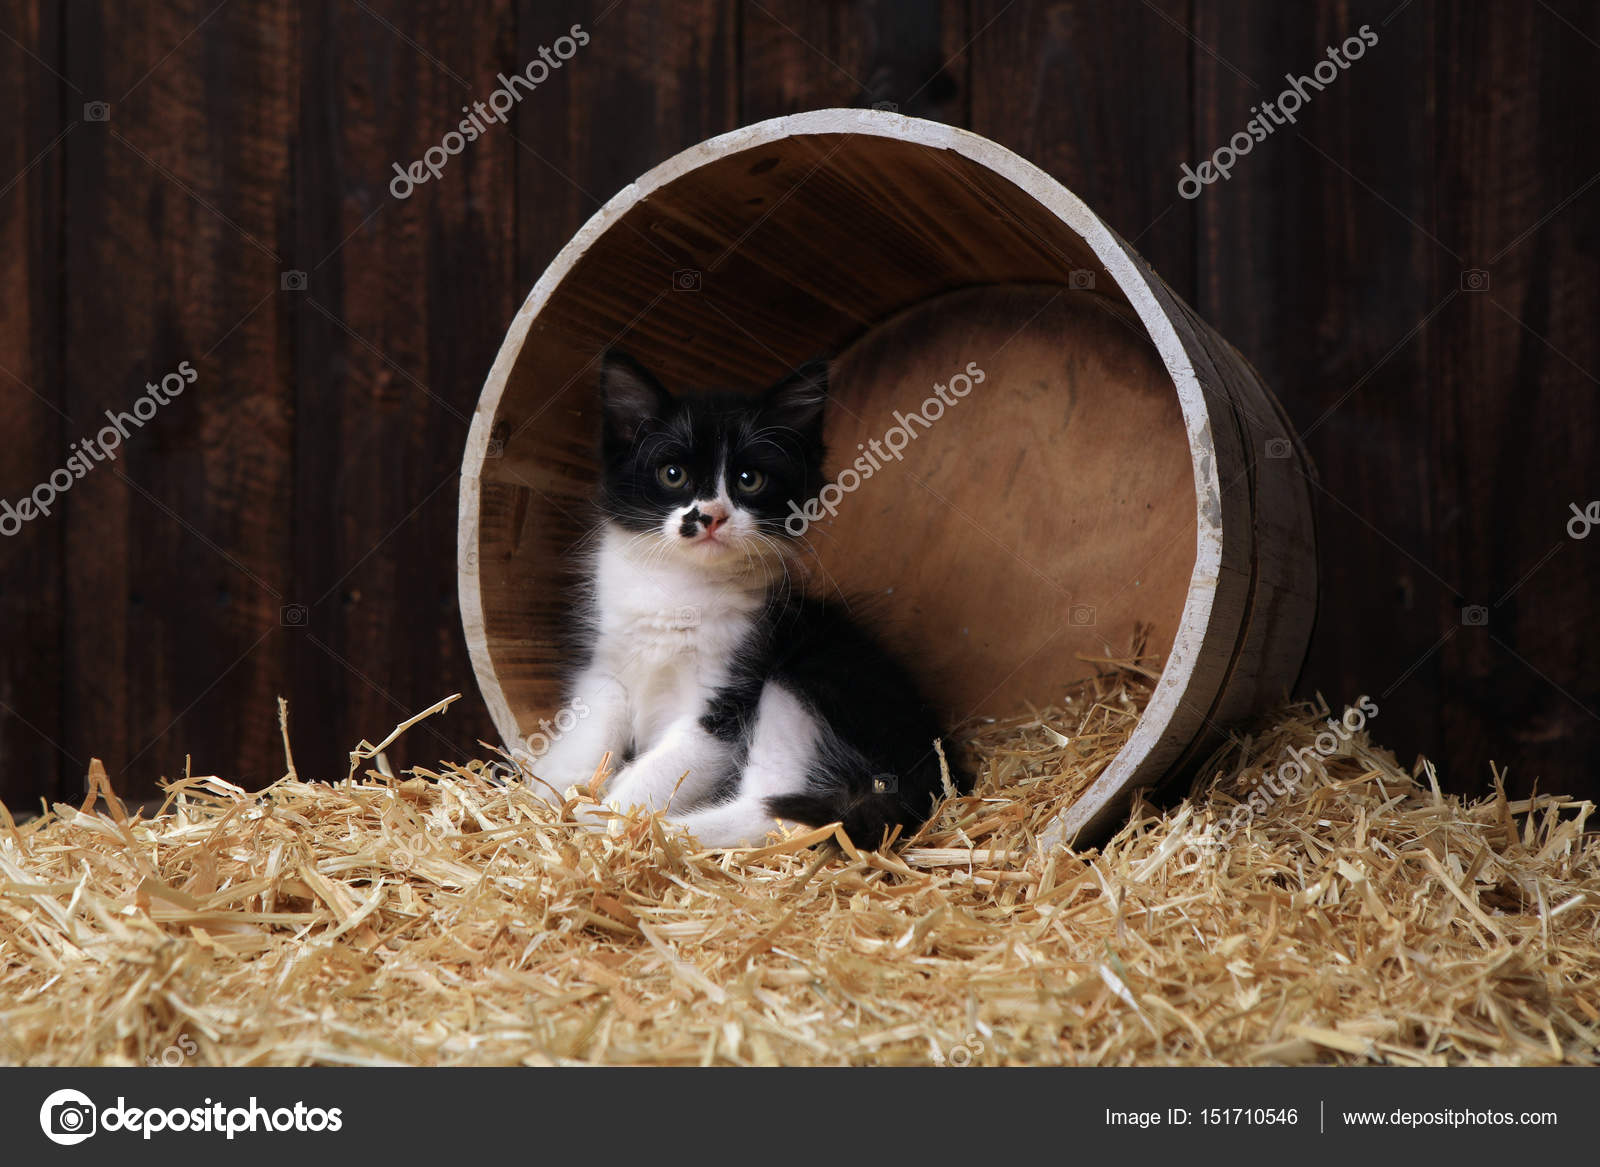 Cute Adorable Kittens in a Barn Setting With Hay — Stock